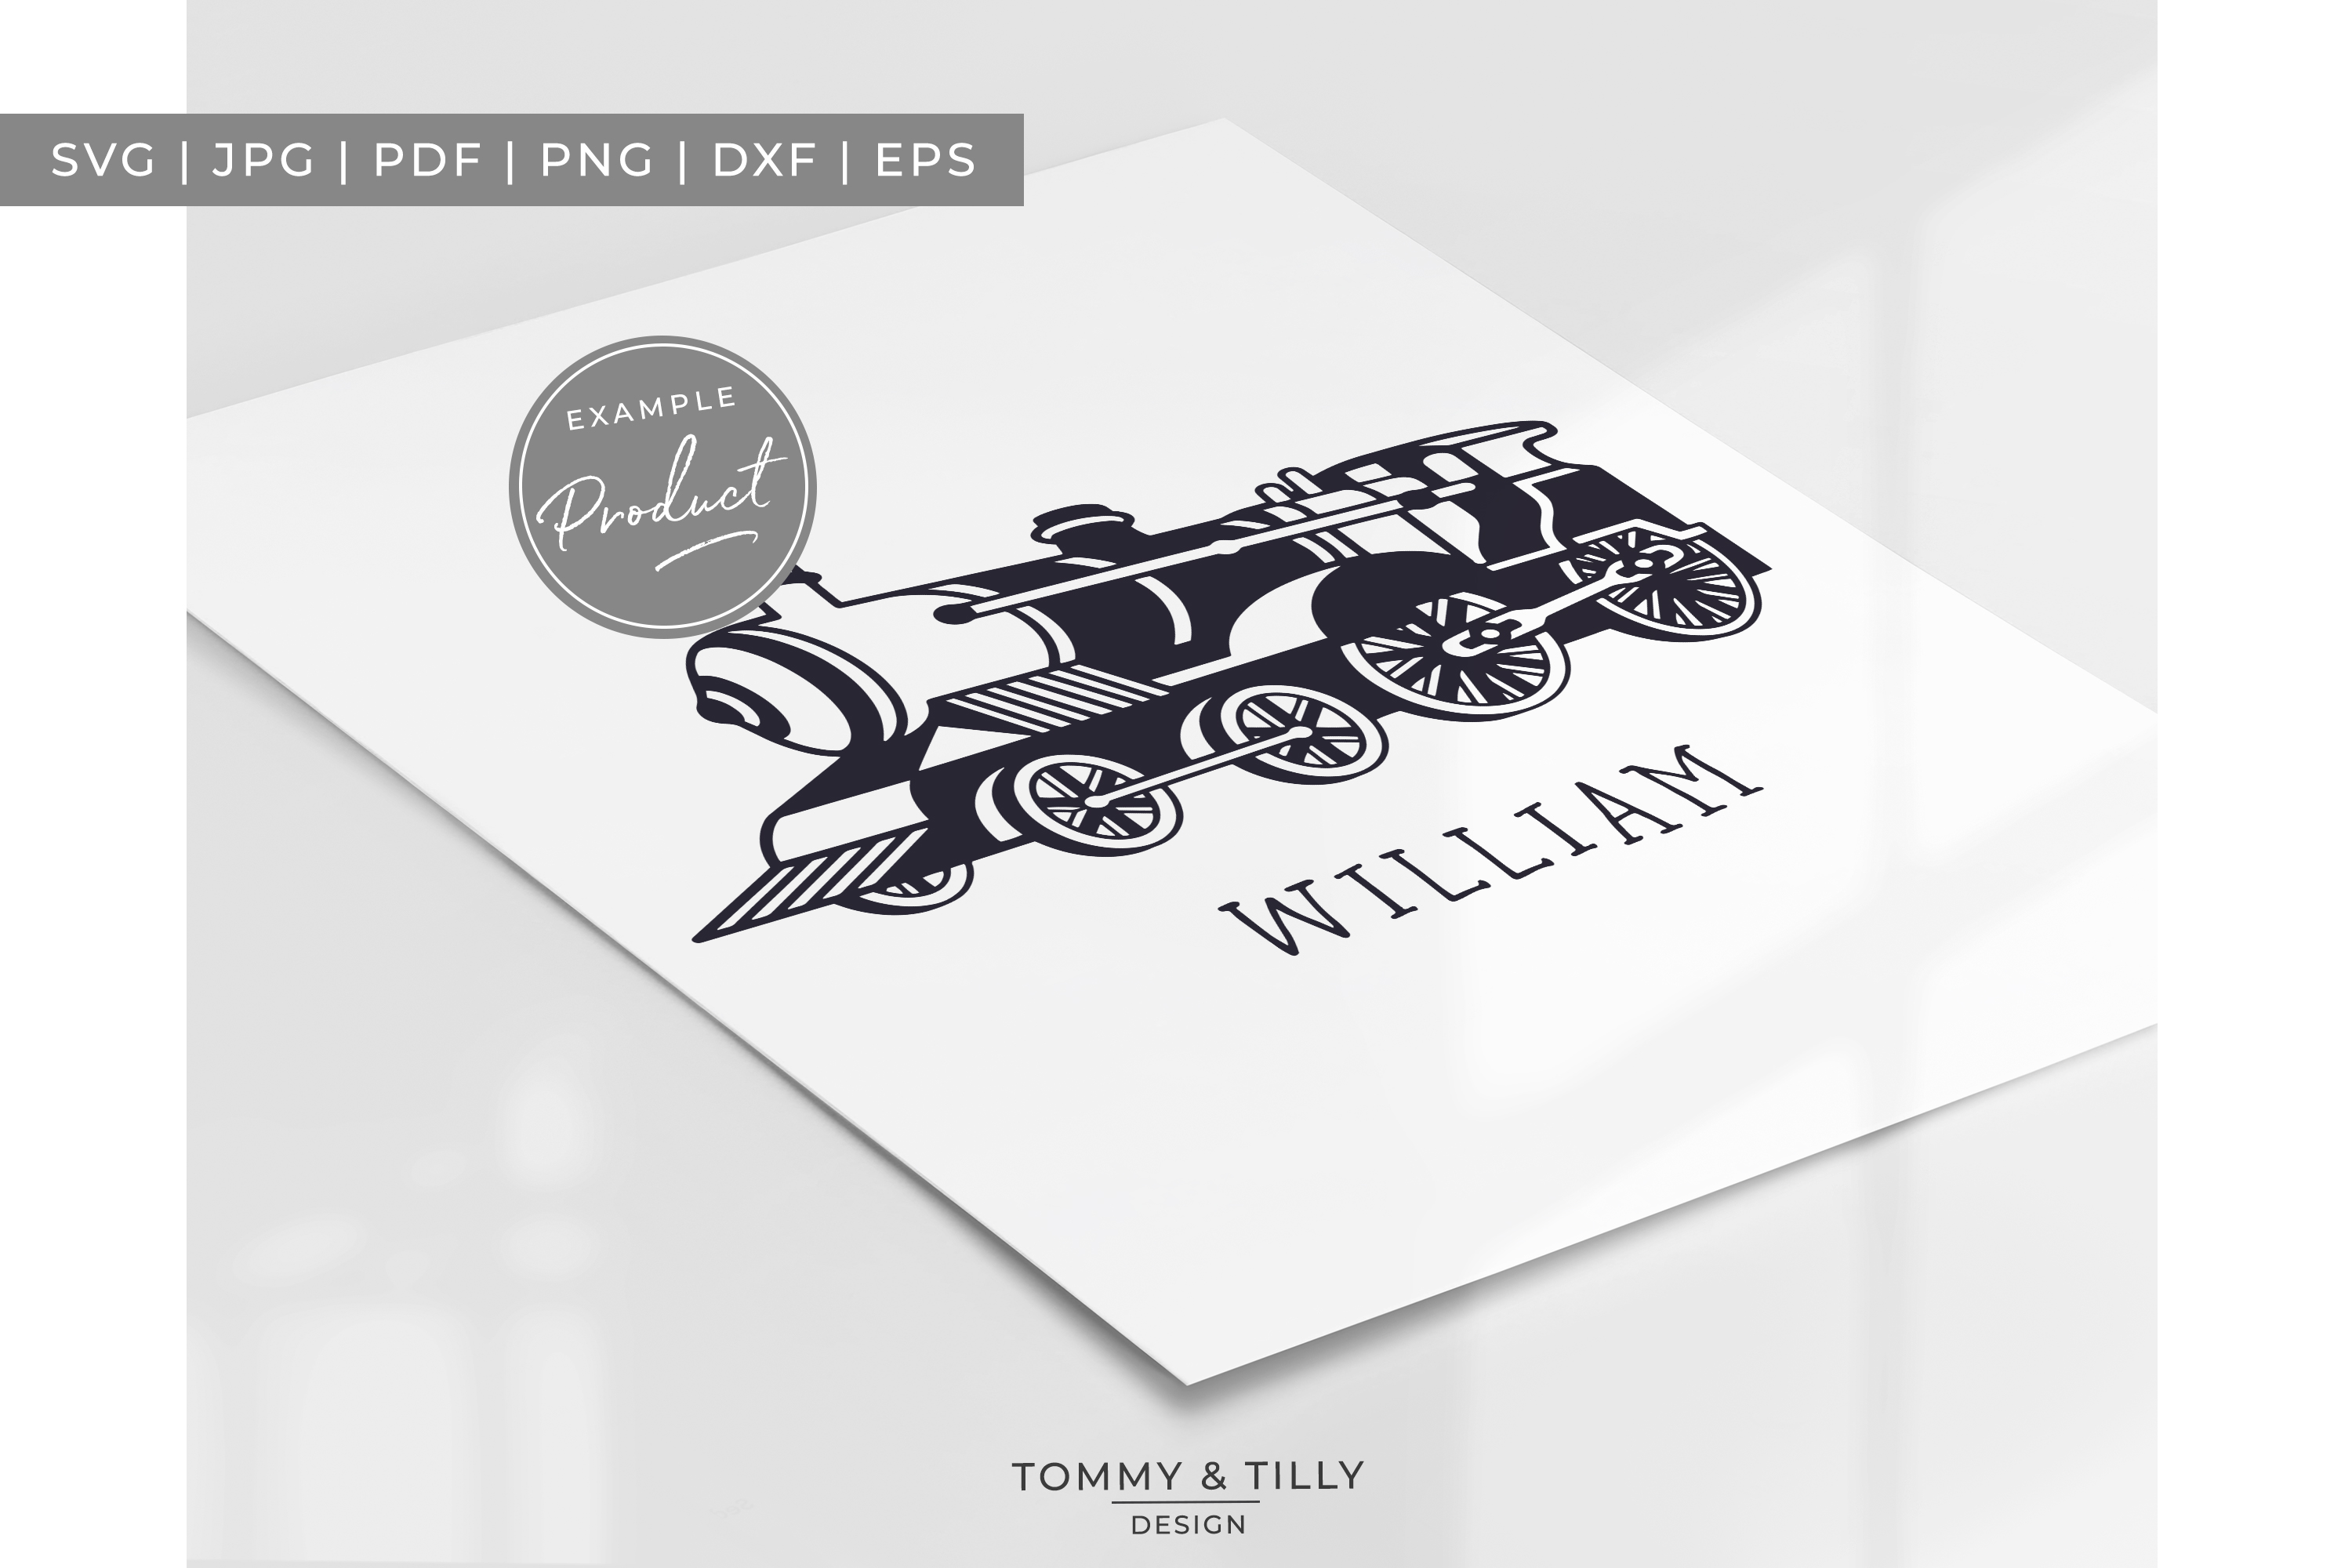 Steam Train- SVG EPS DXF PNG PDF JPG Cut File example image 7